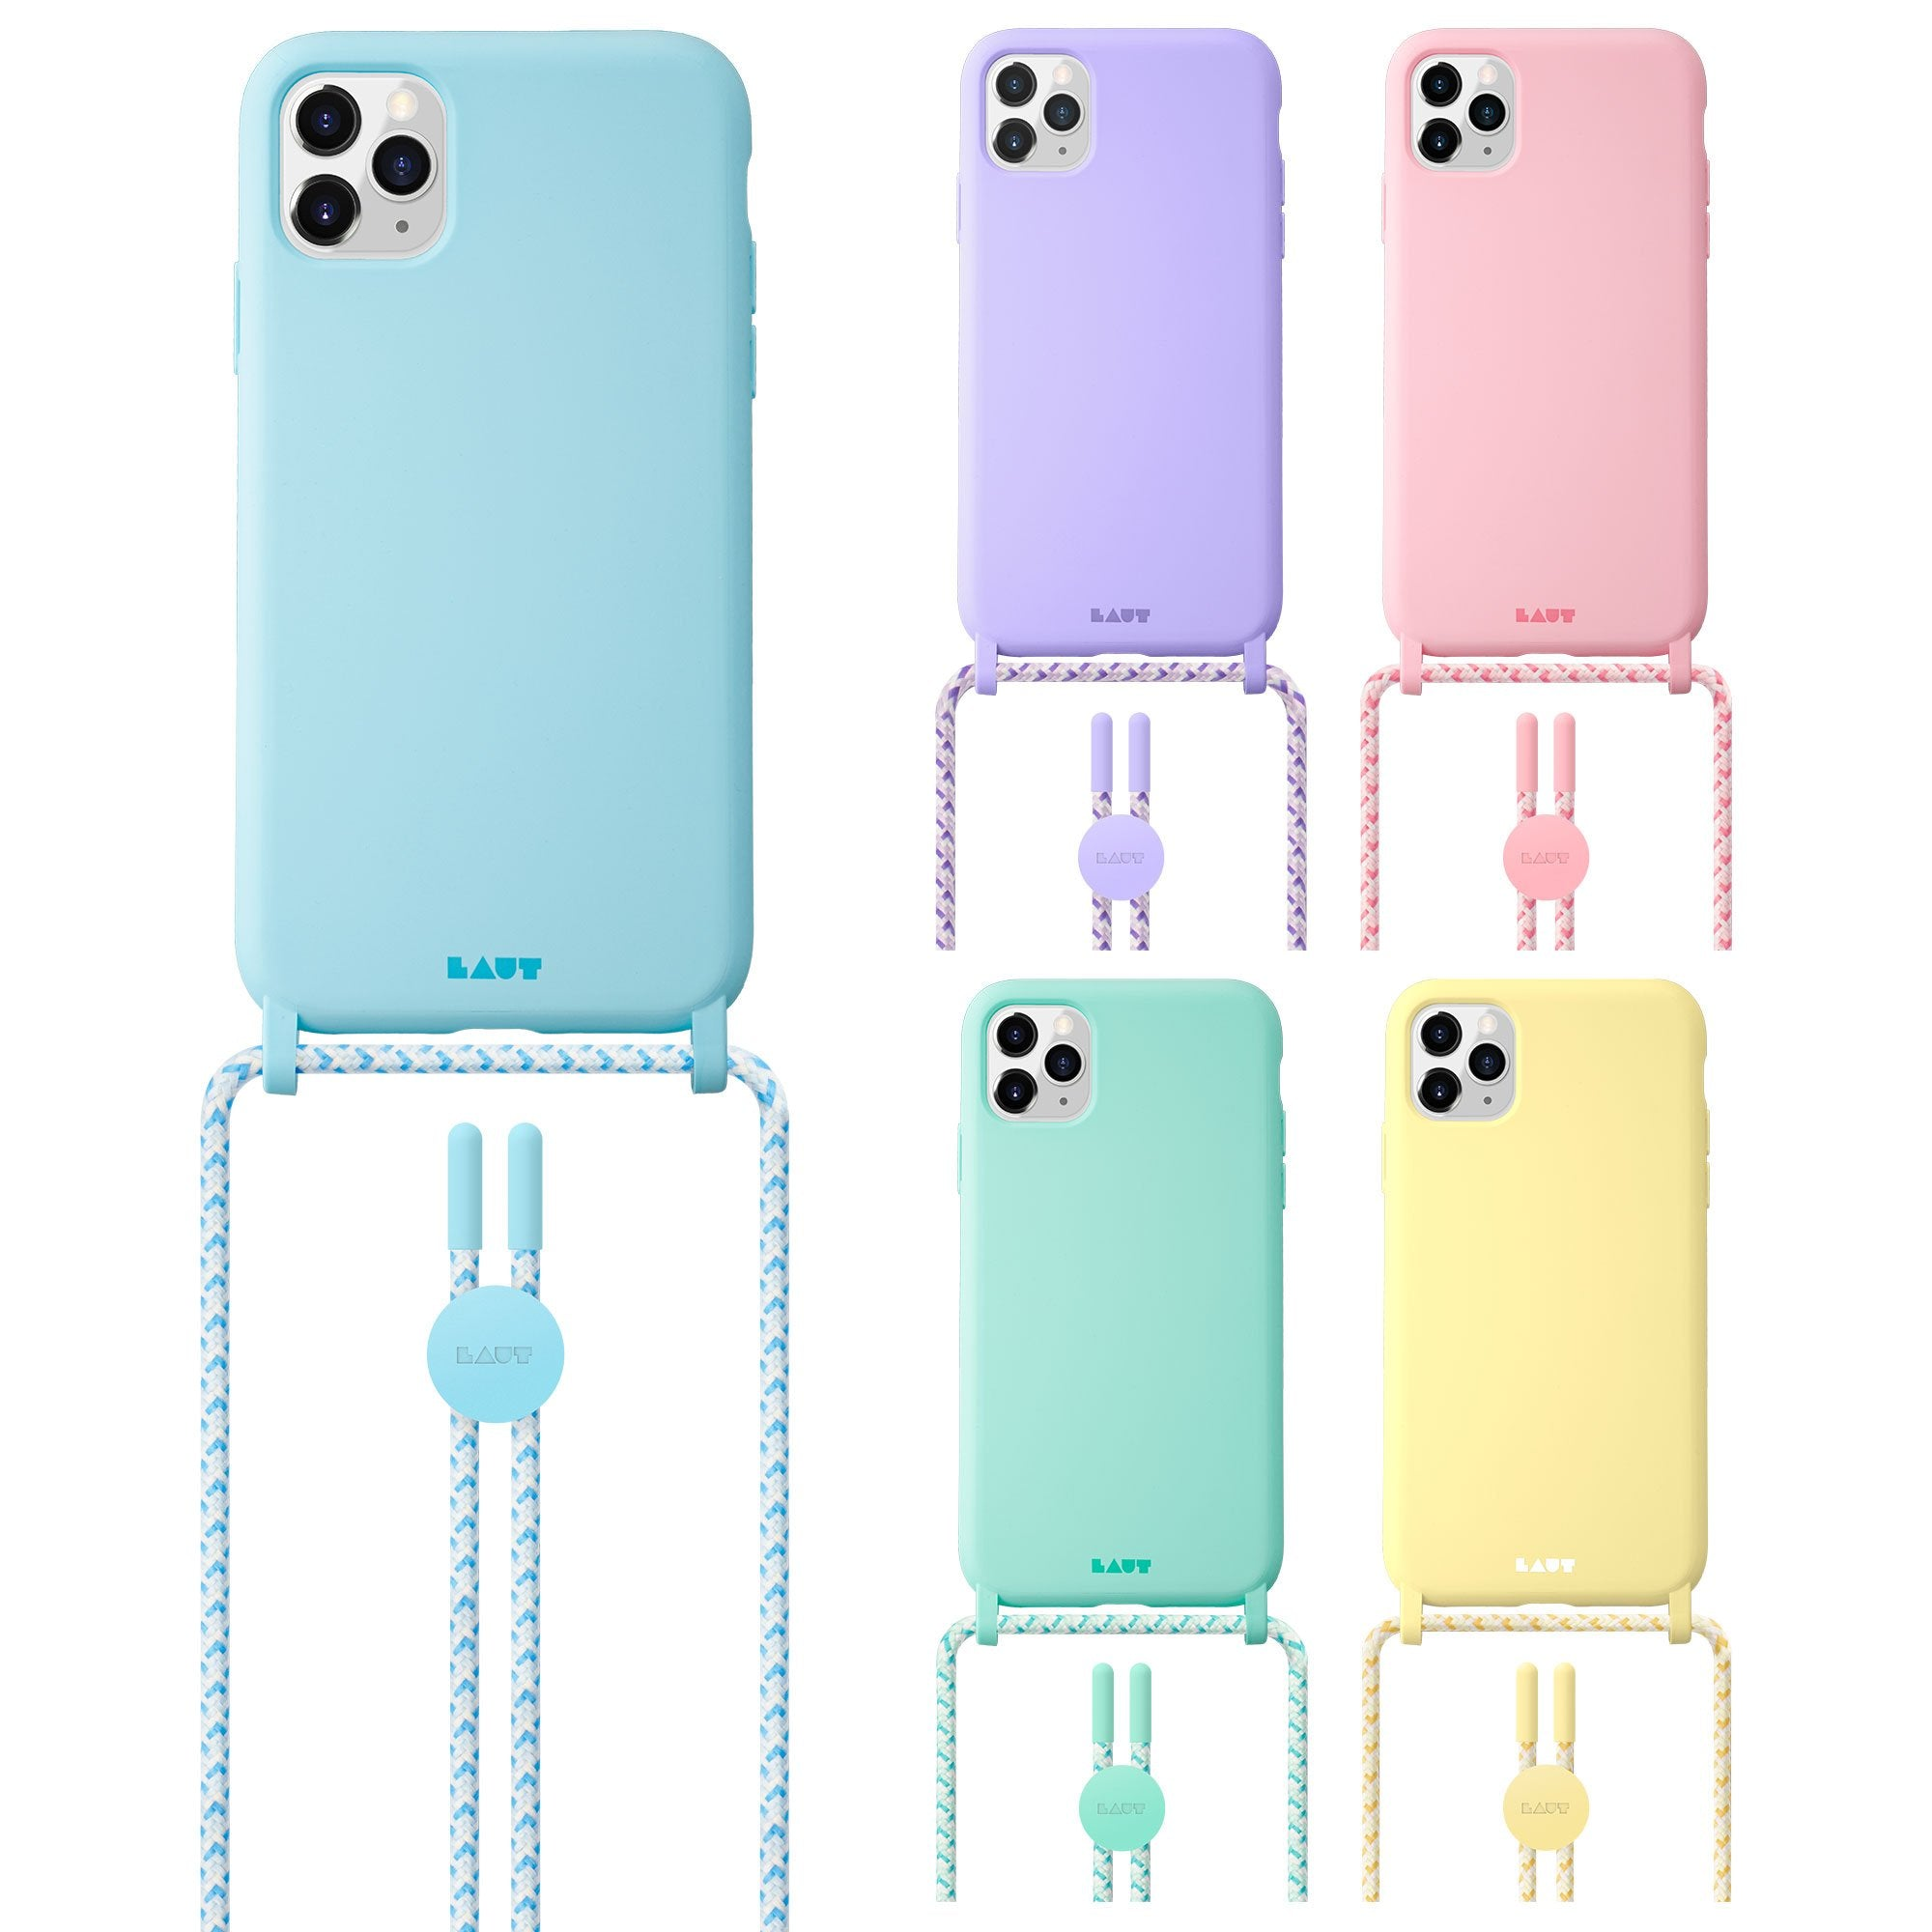 HUEX PASTELS NECKLACE case for iPhone 12 series